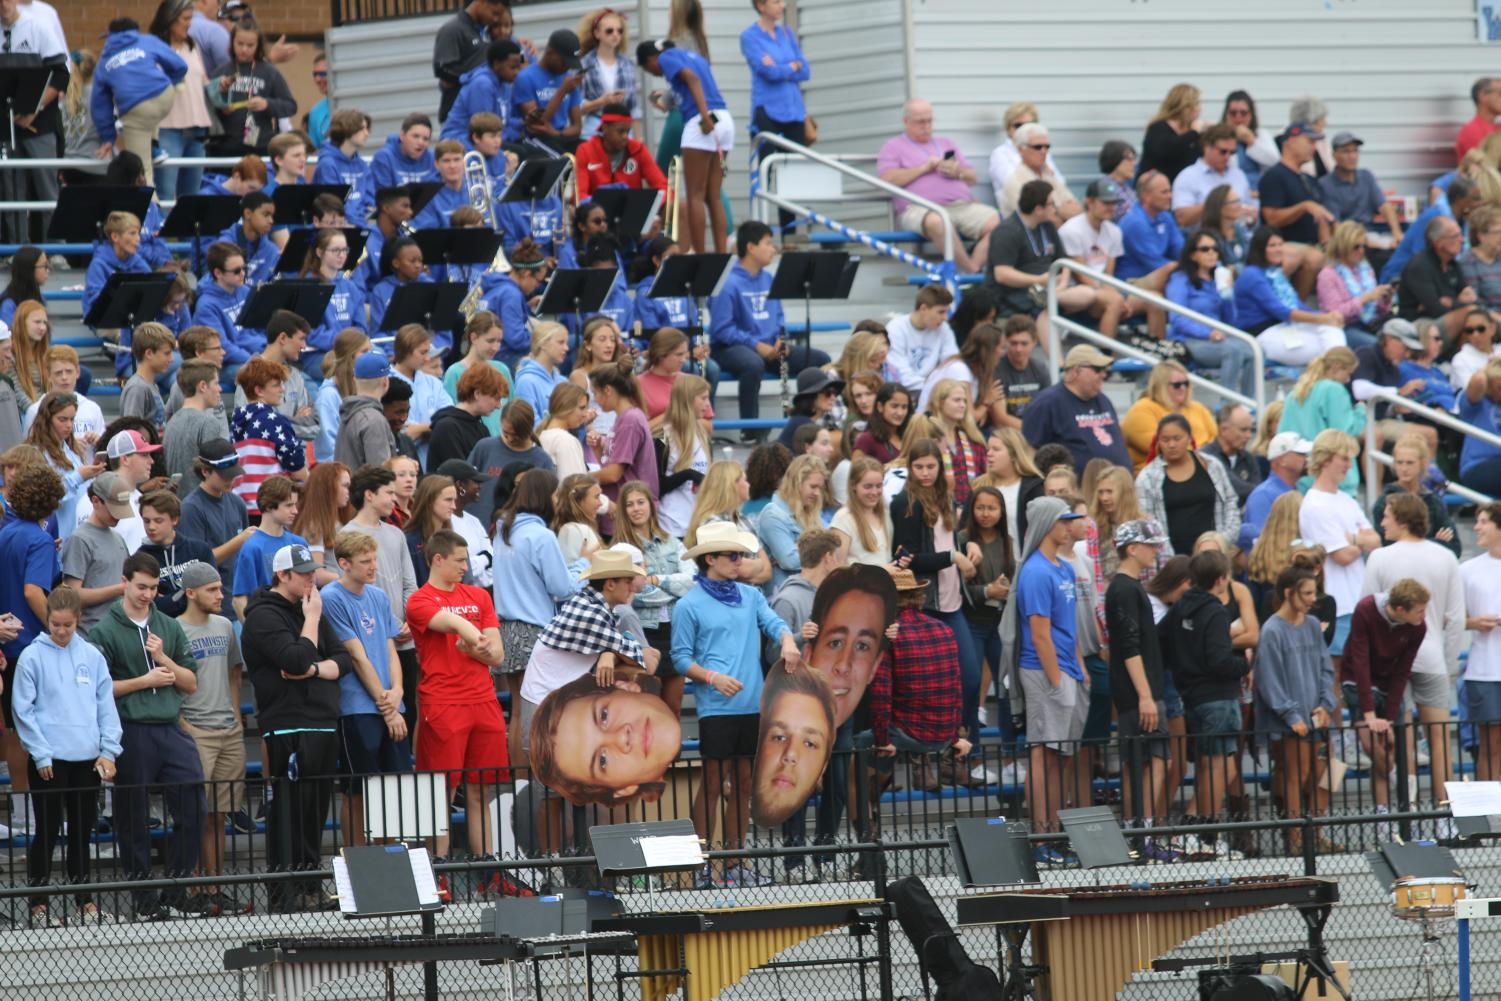 The Blue Crew decked out in western gear for the Wildcats' first ever Homecoming game.